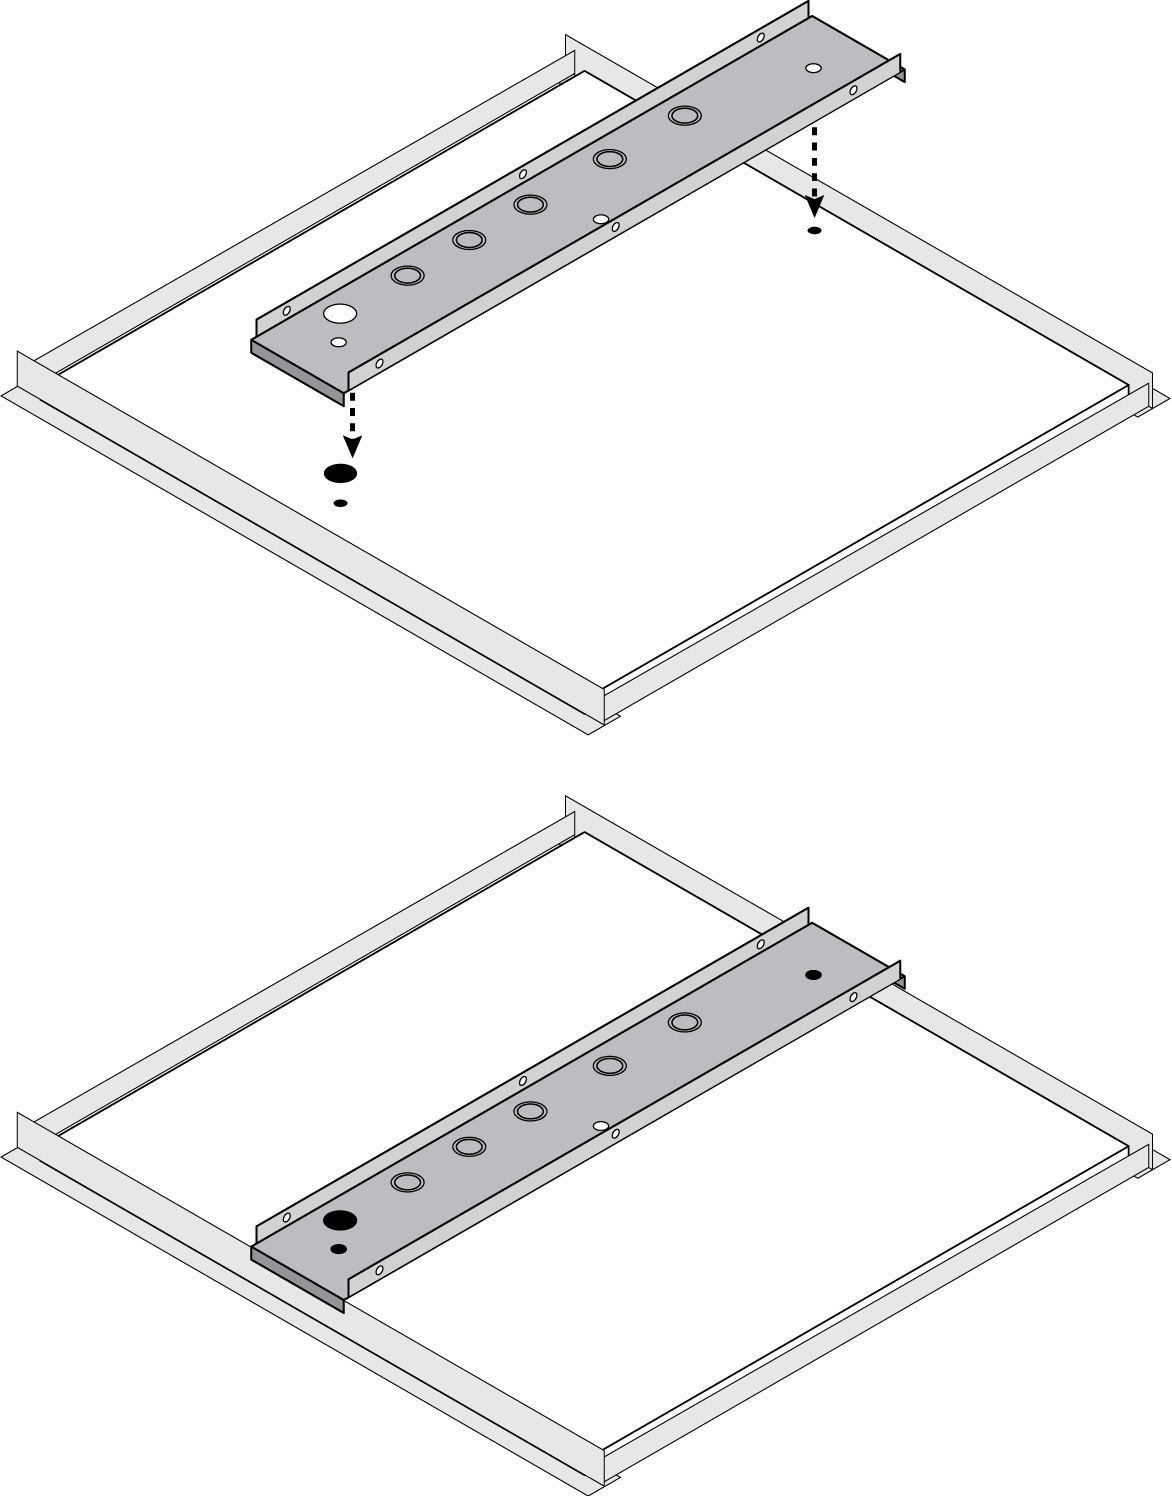 Illustration showing how to install the A710-TB on ceiling T-bars and align it with the holes drilled in the ceiling tile.